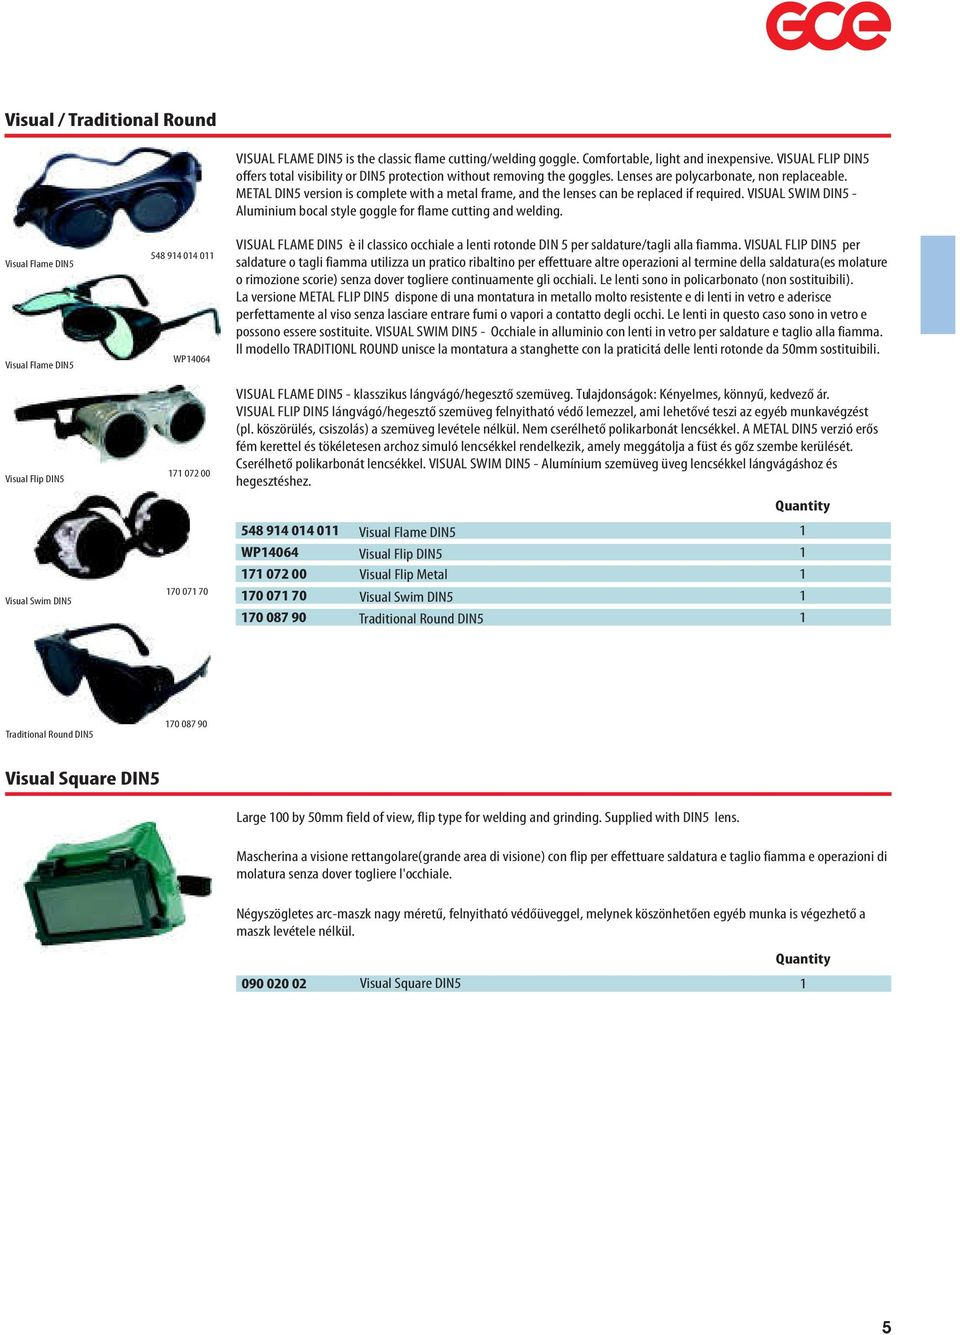 METAL DIN5 version is complete with a metal frame, and the lenses can be replaced if required. VISUAL SWIM DIN5 - Aluminium bocal style goggle for flame cutting and welding.